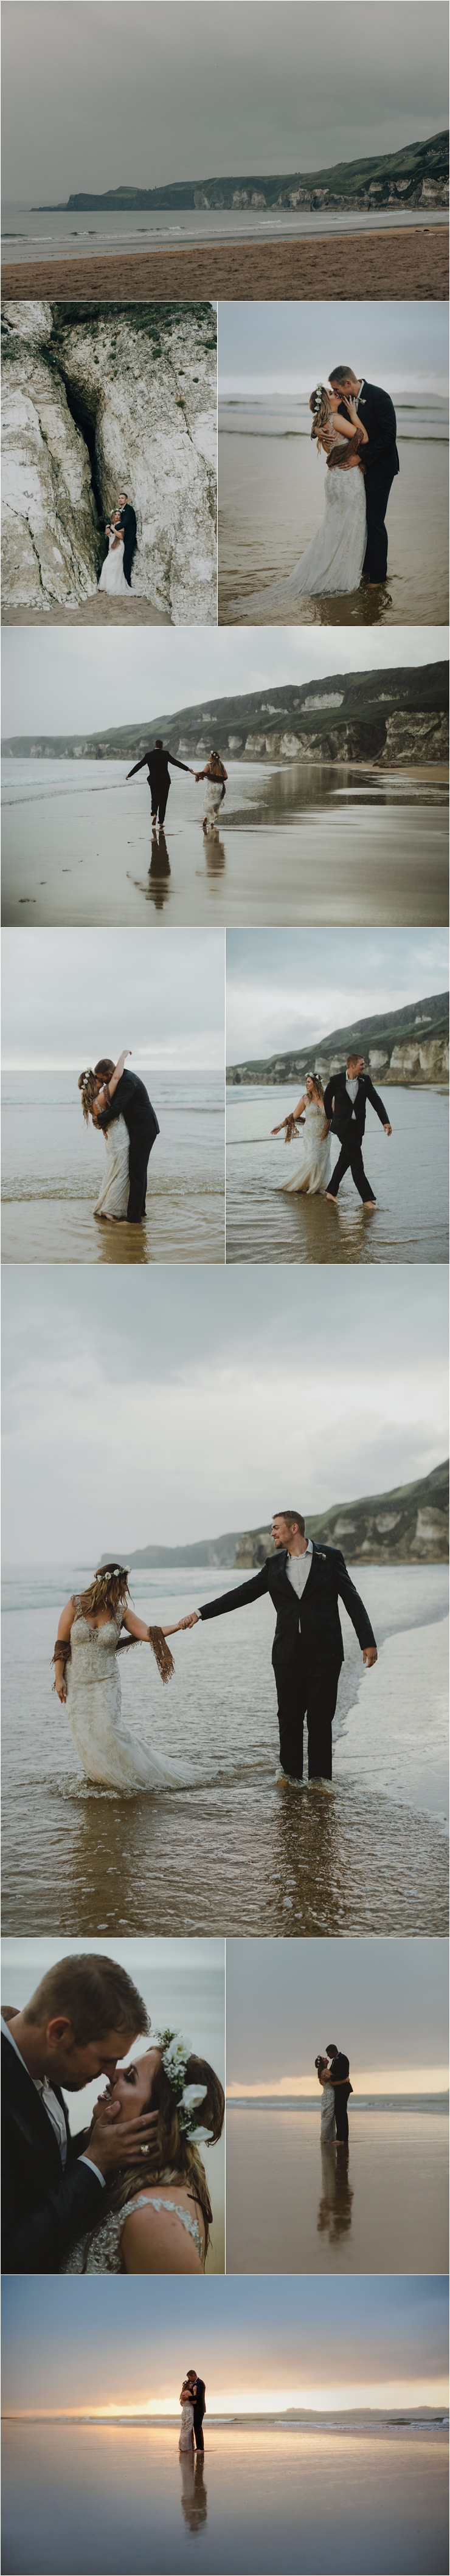 Kristina & Jeffrey elope on a beach in Northern Ireland by Paula O'Hara